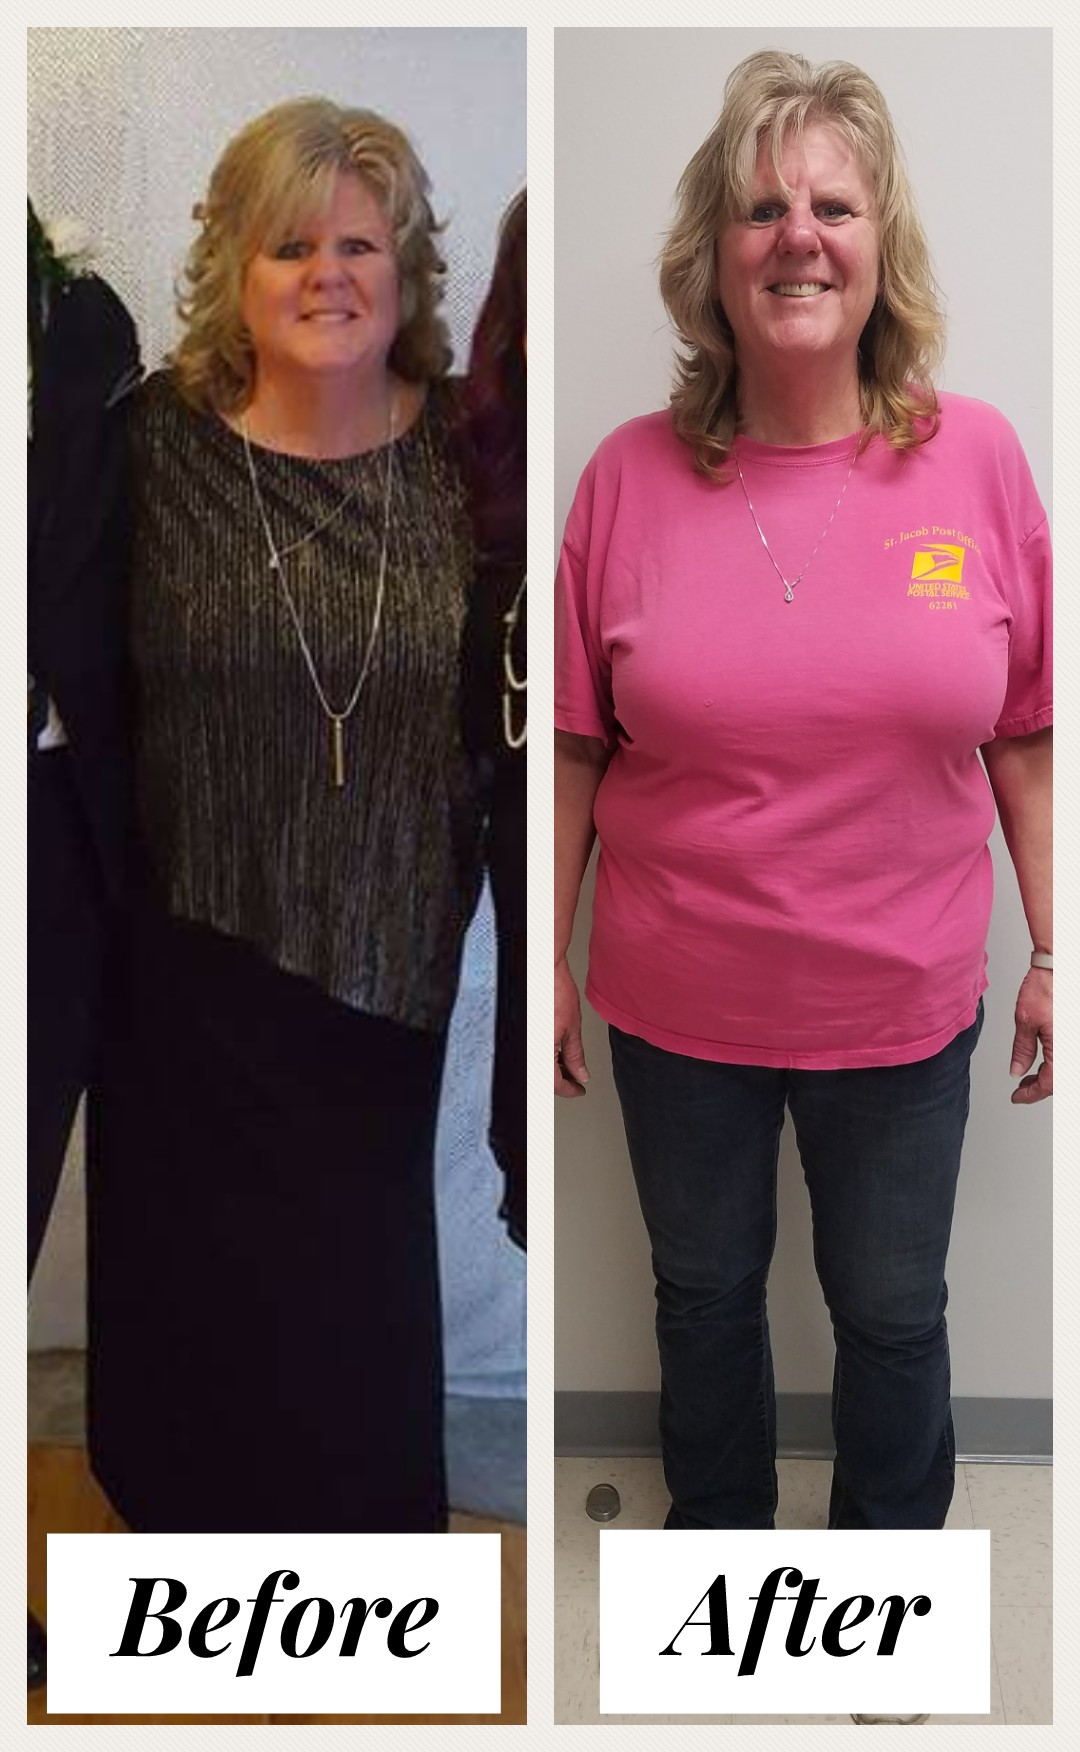 Amy RitterStarting Weight: 239 lbs Current Weight: 186 lbs - Amy started her journey at SOGA CMWL just 7 months ago. Amy started on the QuickStart Program and is currently sticking to the Modified Program with bi-weekly weigh-ins and Lipo B injections.So far she has lost a total of 53 pounds, 9#s off her BMI, 36 lbs of just Fat, 7.6% Body Fat, added 4% on her water intake and actually went up 1 lb of Muscle!Amy wrote: I have struggled with weight most of my life. Up and down but mostly up. I felt like I carried all the extra weight on my knees and hips.They were hurting so bad, I knew it was time to find something that worked!Being on certain meds for artificial heart valve, was one of my biggest concerns. I tried herbal dieting then just gave up. I lost my parents within 4 months of each other and divorce..all worked against me getting back on track. Went to Dr. Doll- Pollard and she was telling me about the new diet plan they had at SOGA. I thought